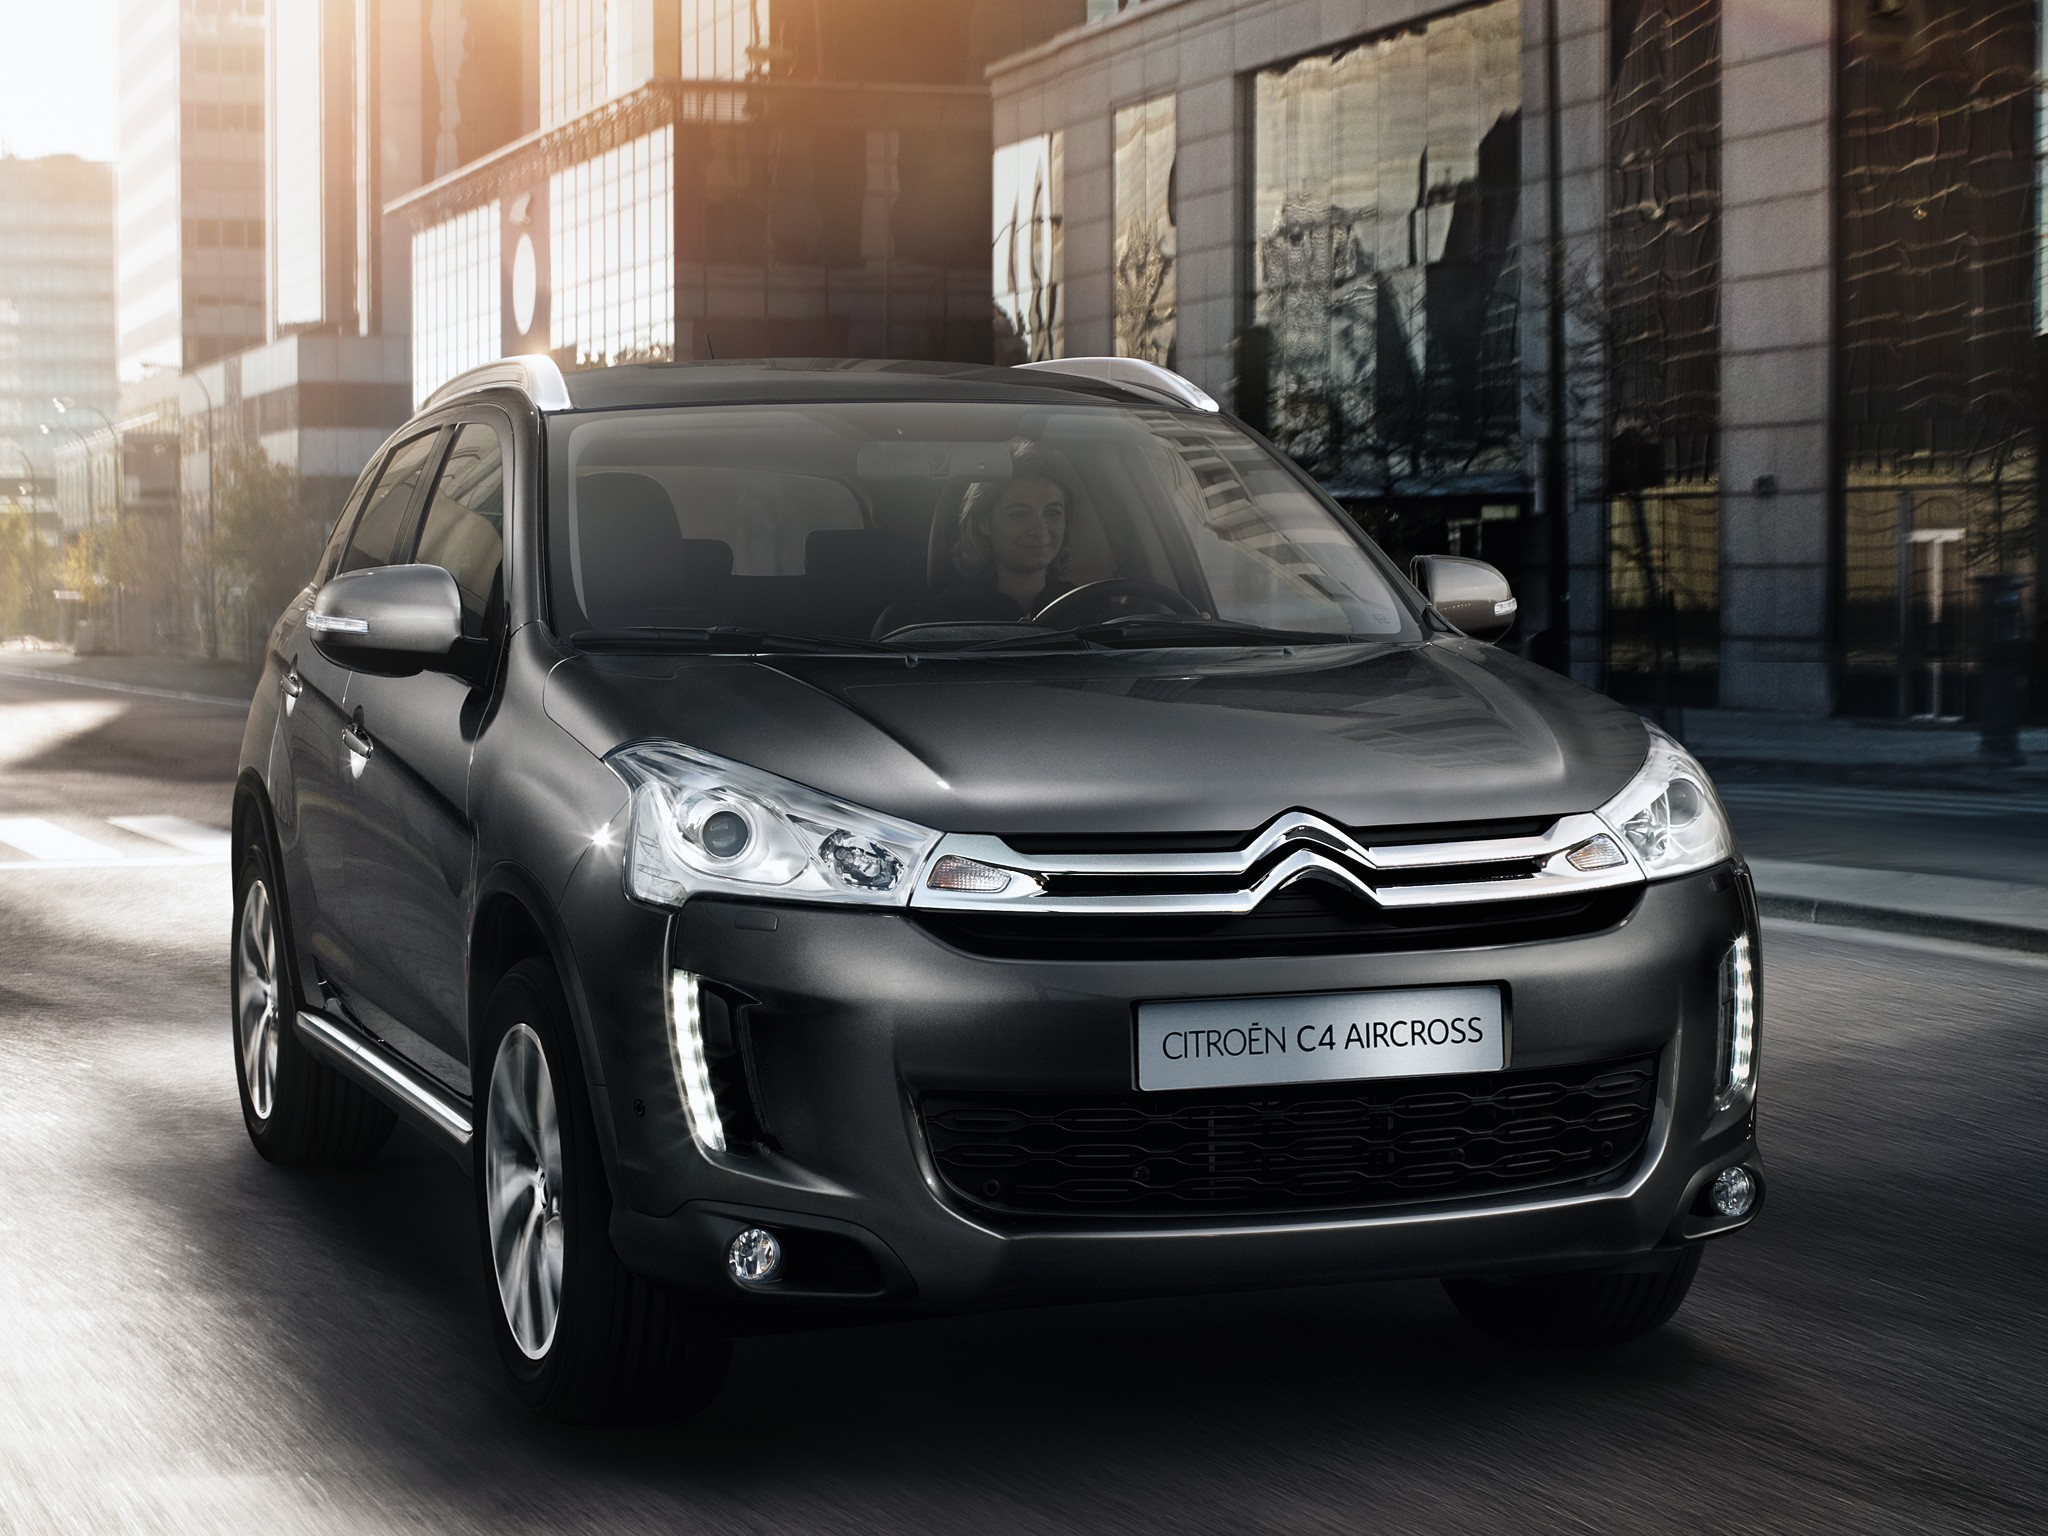 Citroen C4 Aircross Reviews - Citroen C4 Aircross Car Reviews